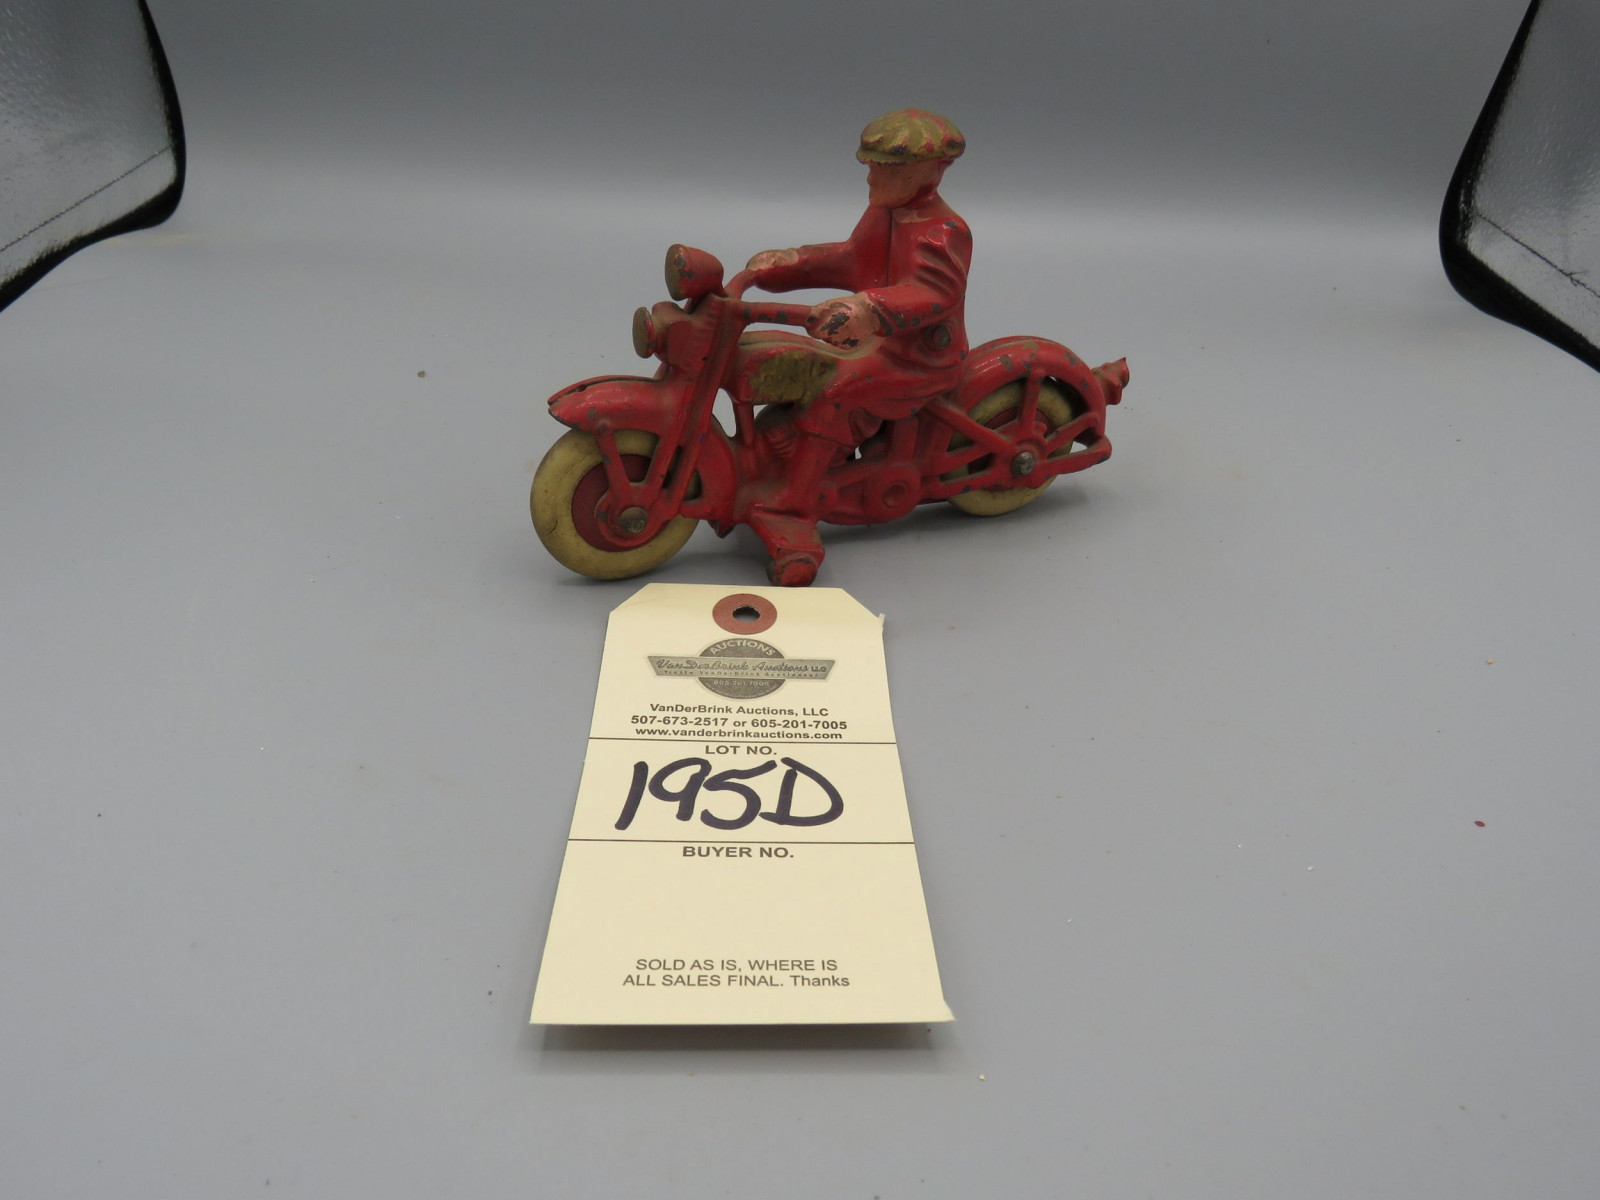 Hubley Motorcycle Cast Iron with Civilian Rider with Rubber Wheels Approx. 6 1/4 inches - Image 1